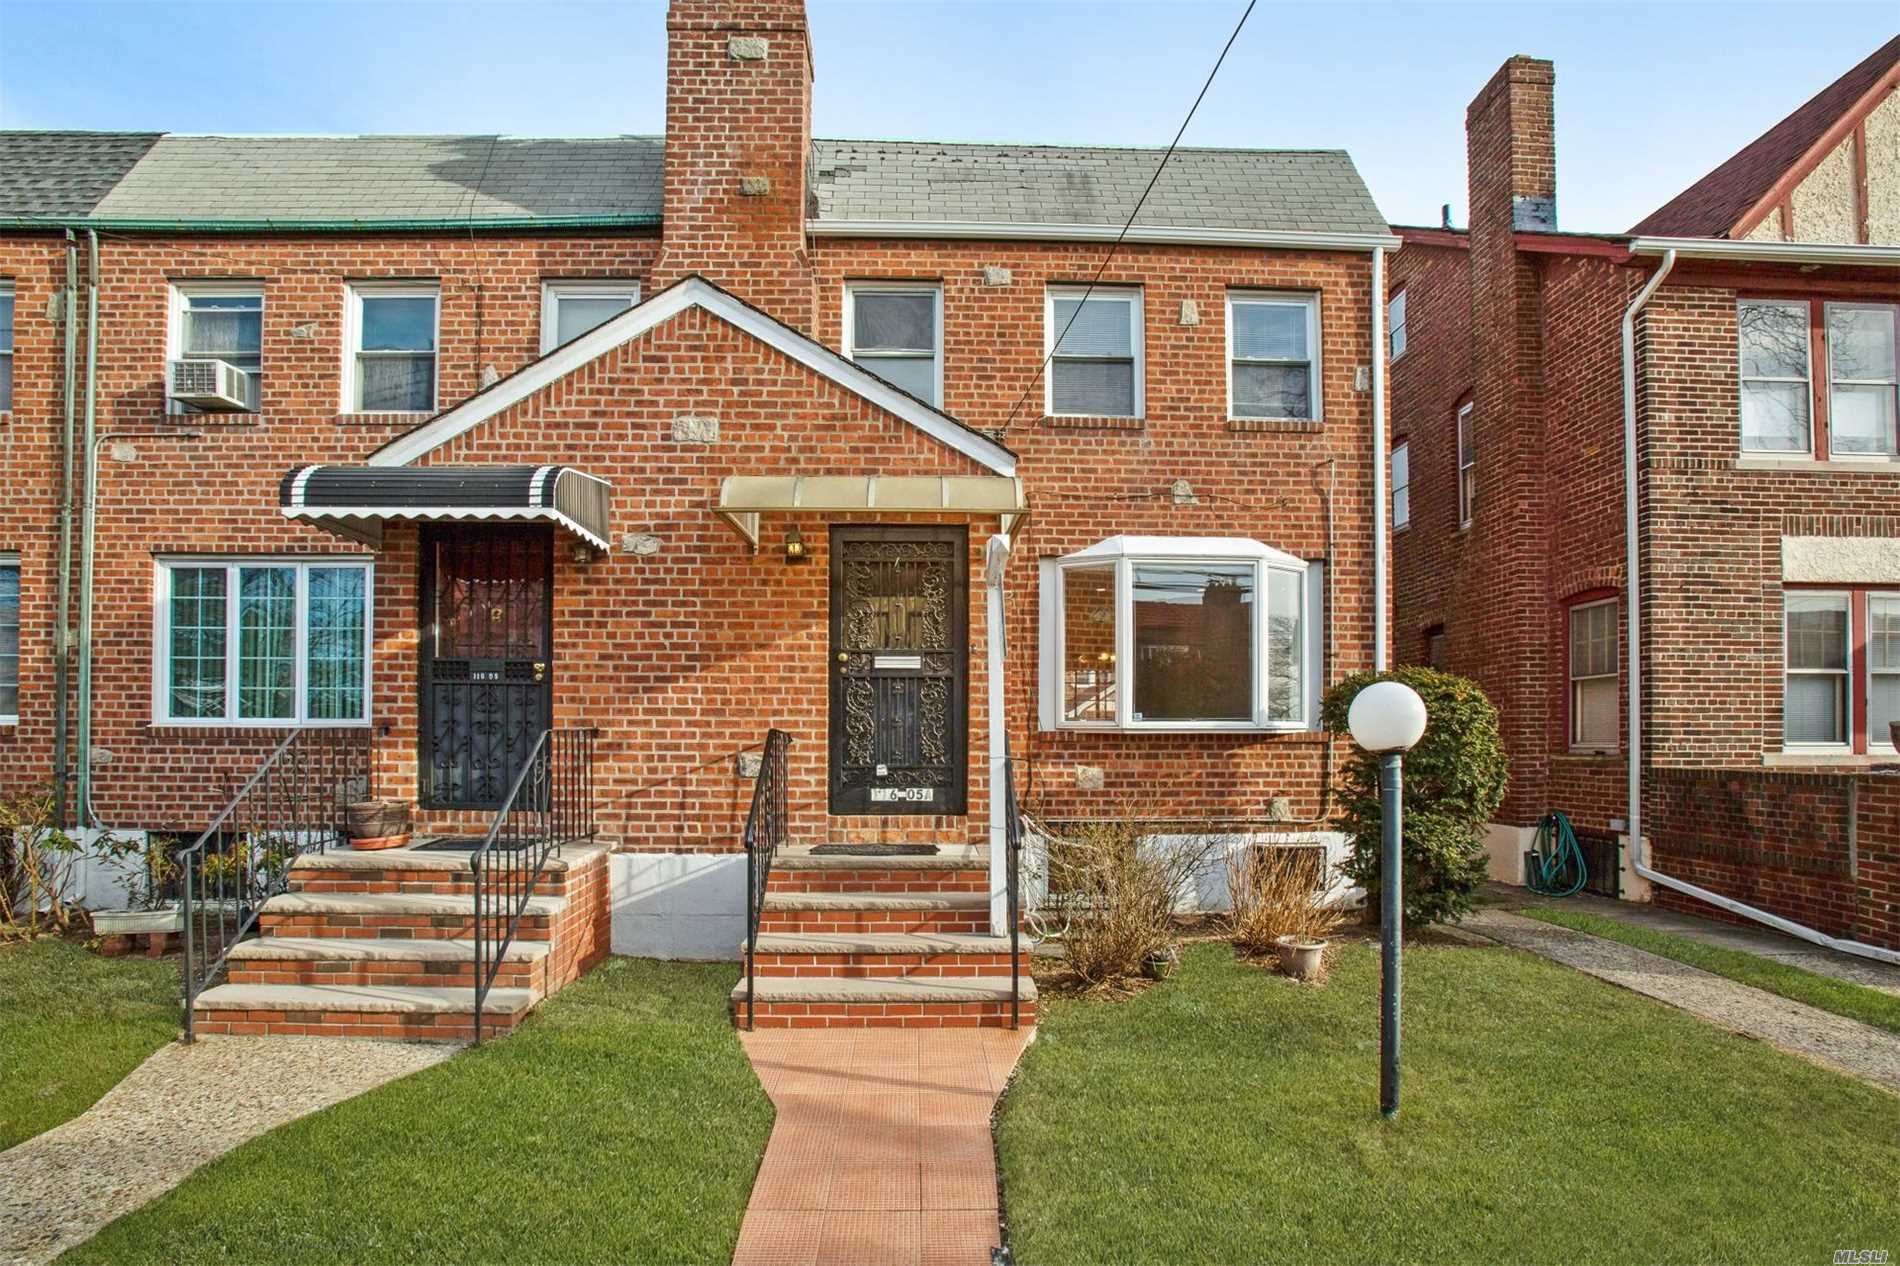 Fully Updated Lovely Brick 3 Bedroom, 1 Bath Colonial Open Concept Formal Dining W Hardwood Floors Throughout Plenty Of Natural Light In Excellent Condition. Stainless Steel Appliances Beautiful Rear Porch Area Finished Basement With Ose 1 Car Garage. Near Transportation And Shopping. Motivated Seller. Take A Look Today